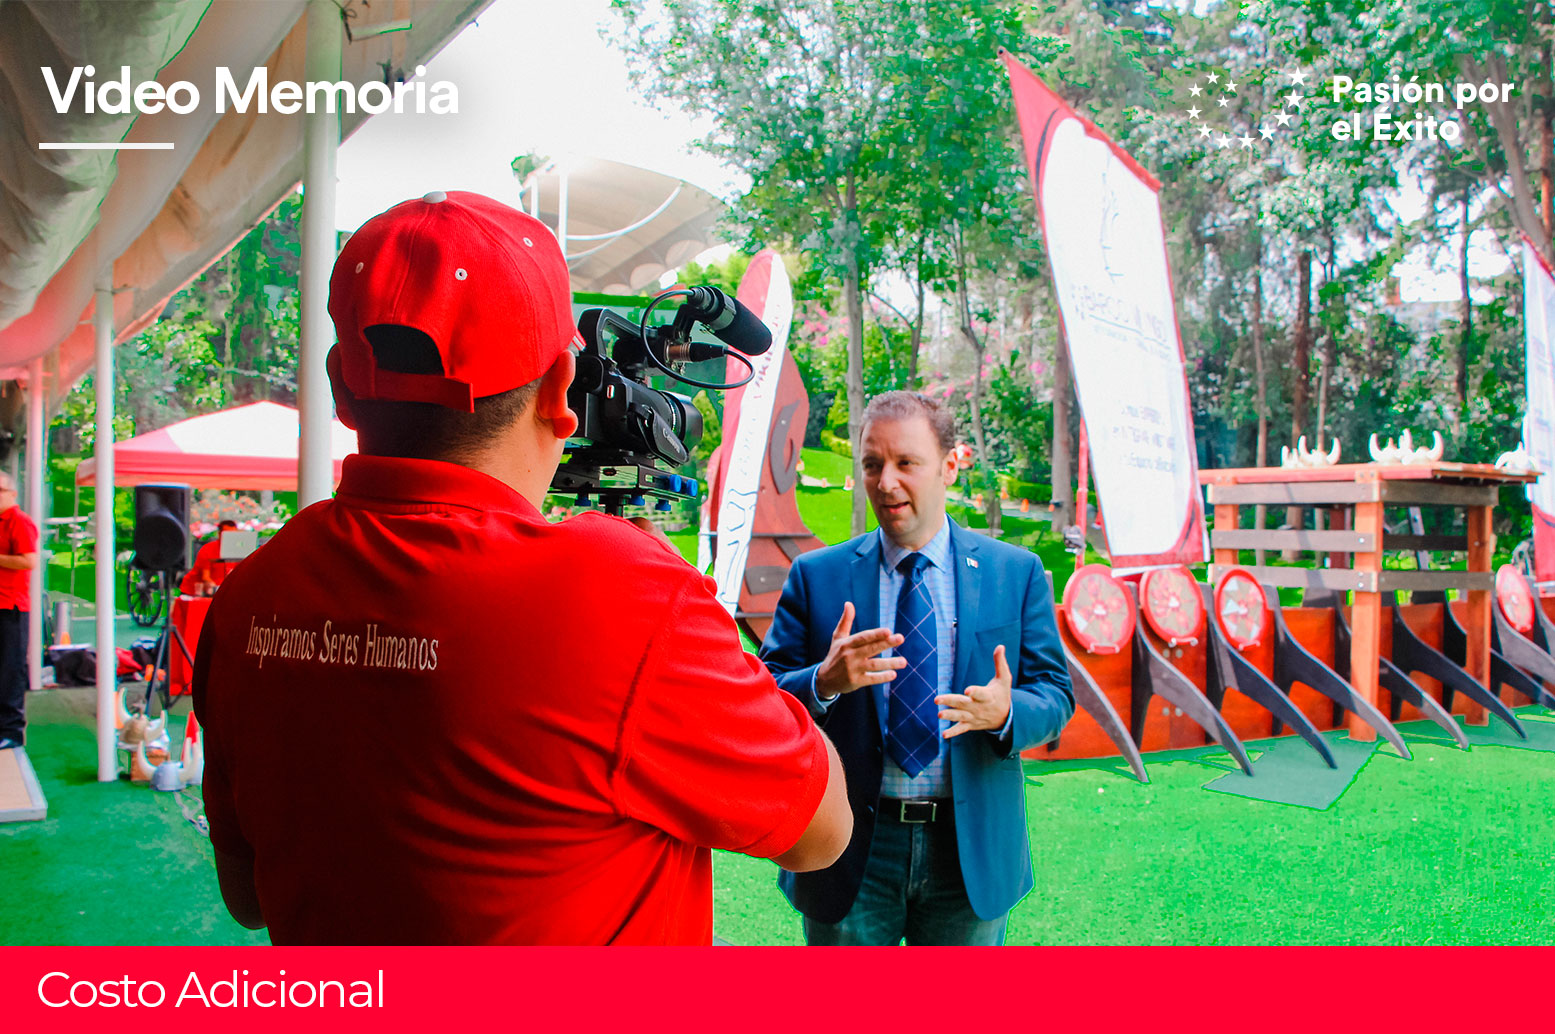 dinamica-de-integracion-y-team-building-galeria-video-memoria